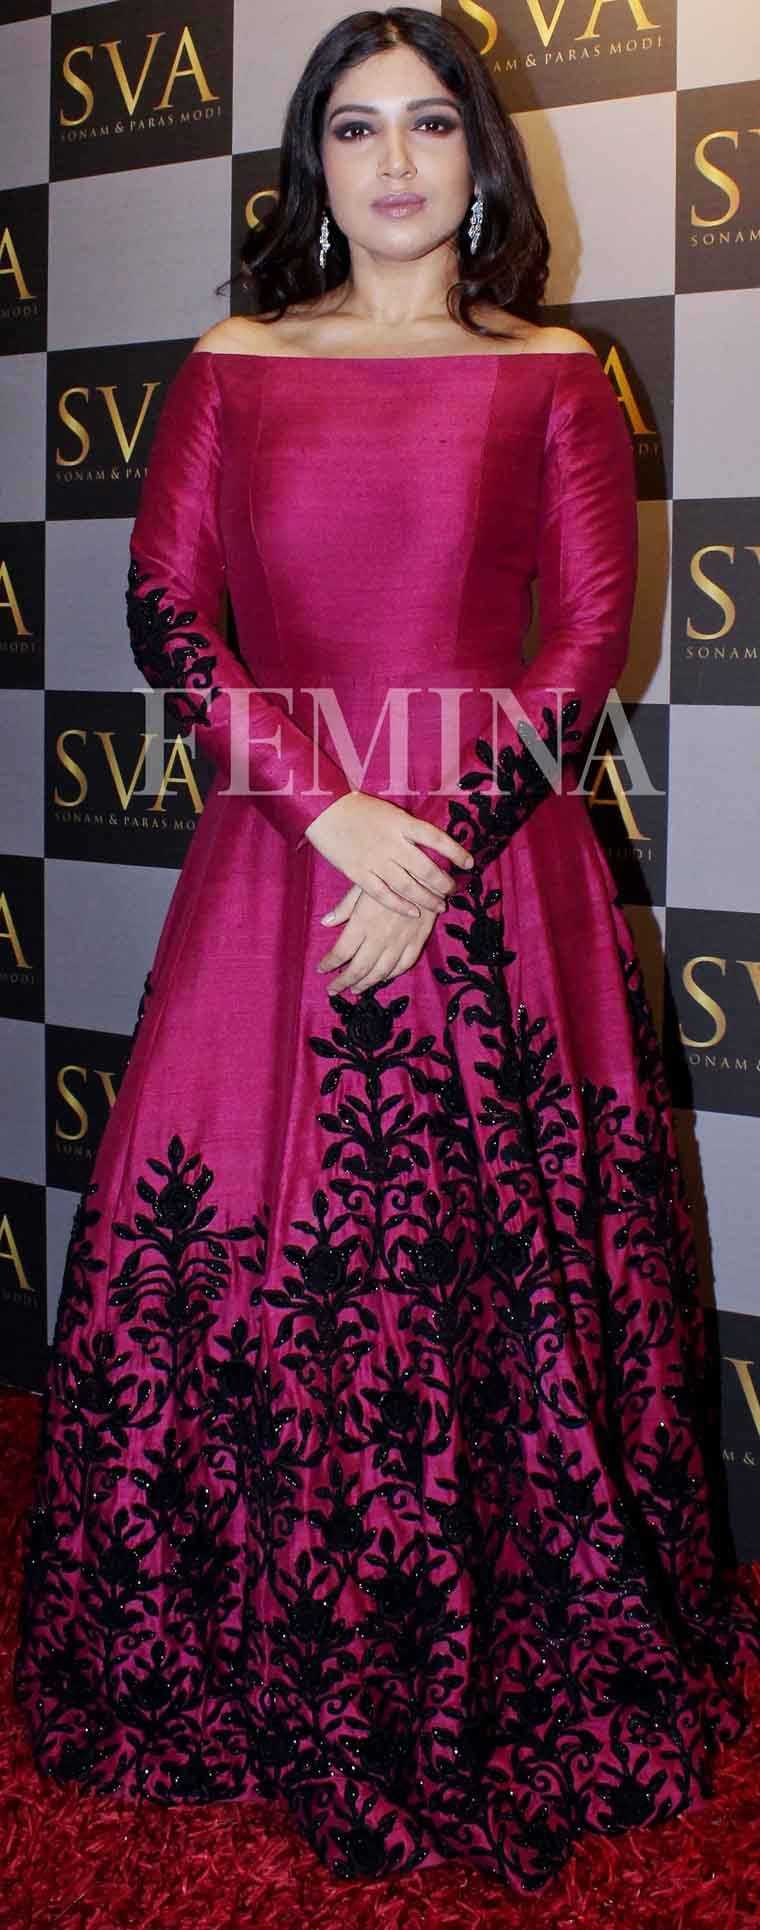 Bhumi Pednekar's embroidered off-shoulder gown by Sva is perfect for the season. She teams it with a pair of diamond earrings.